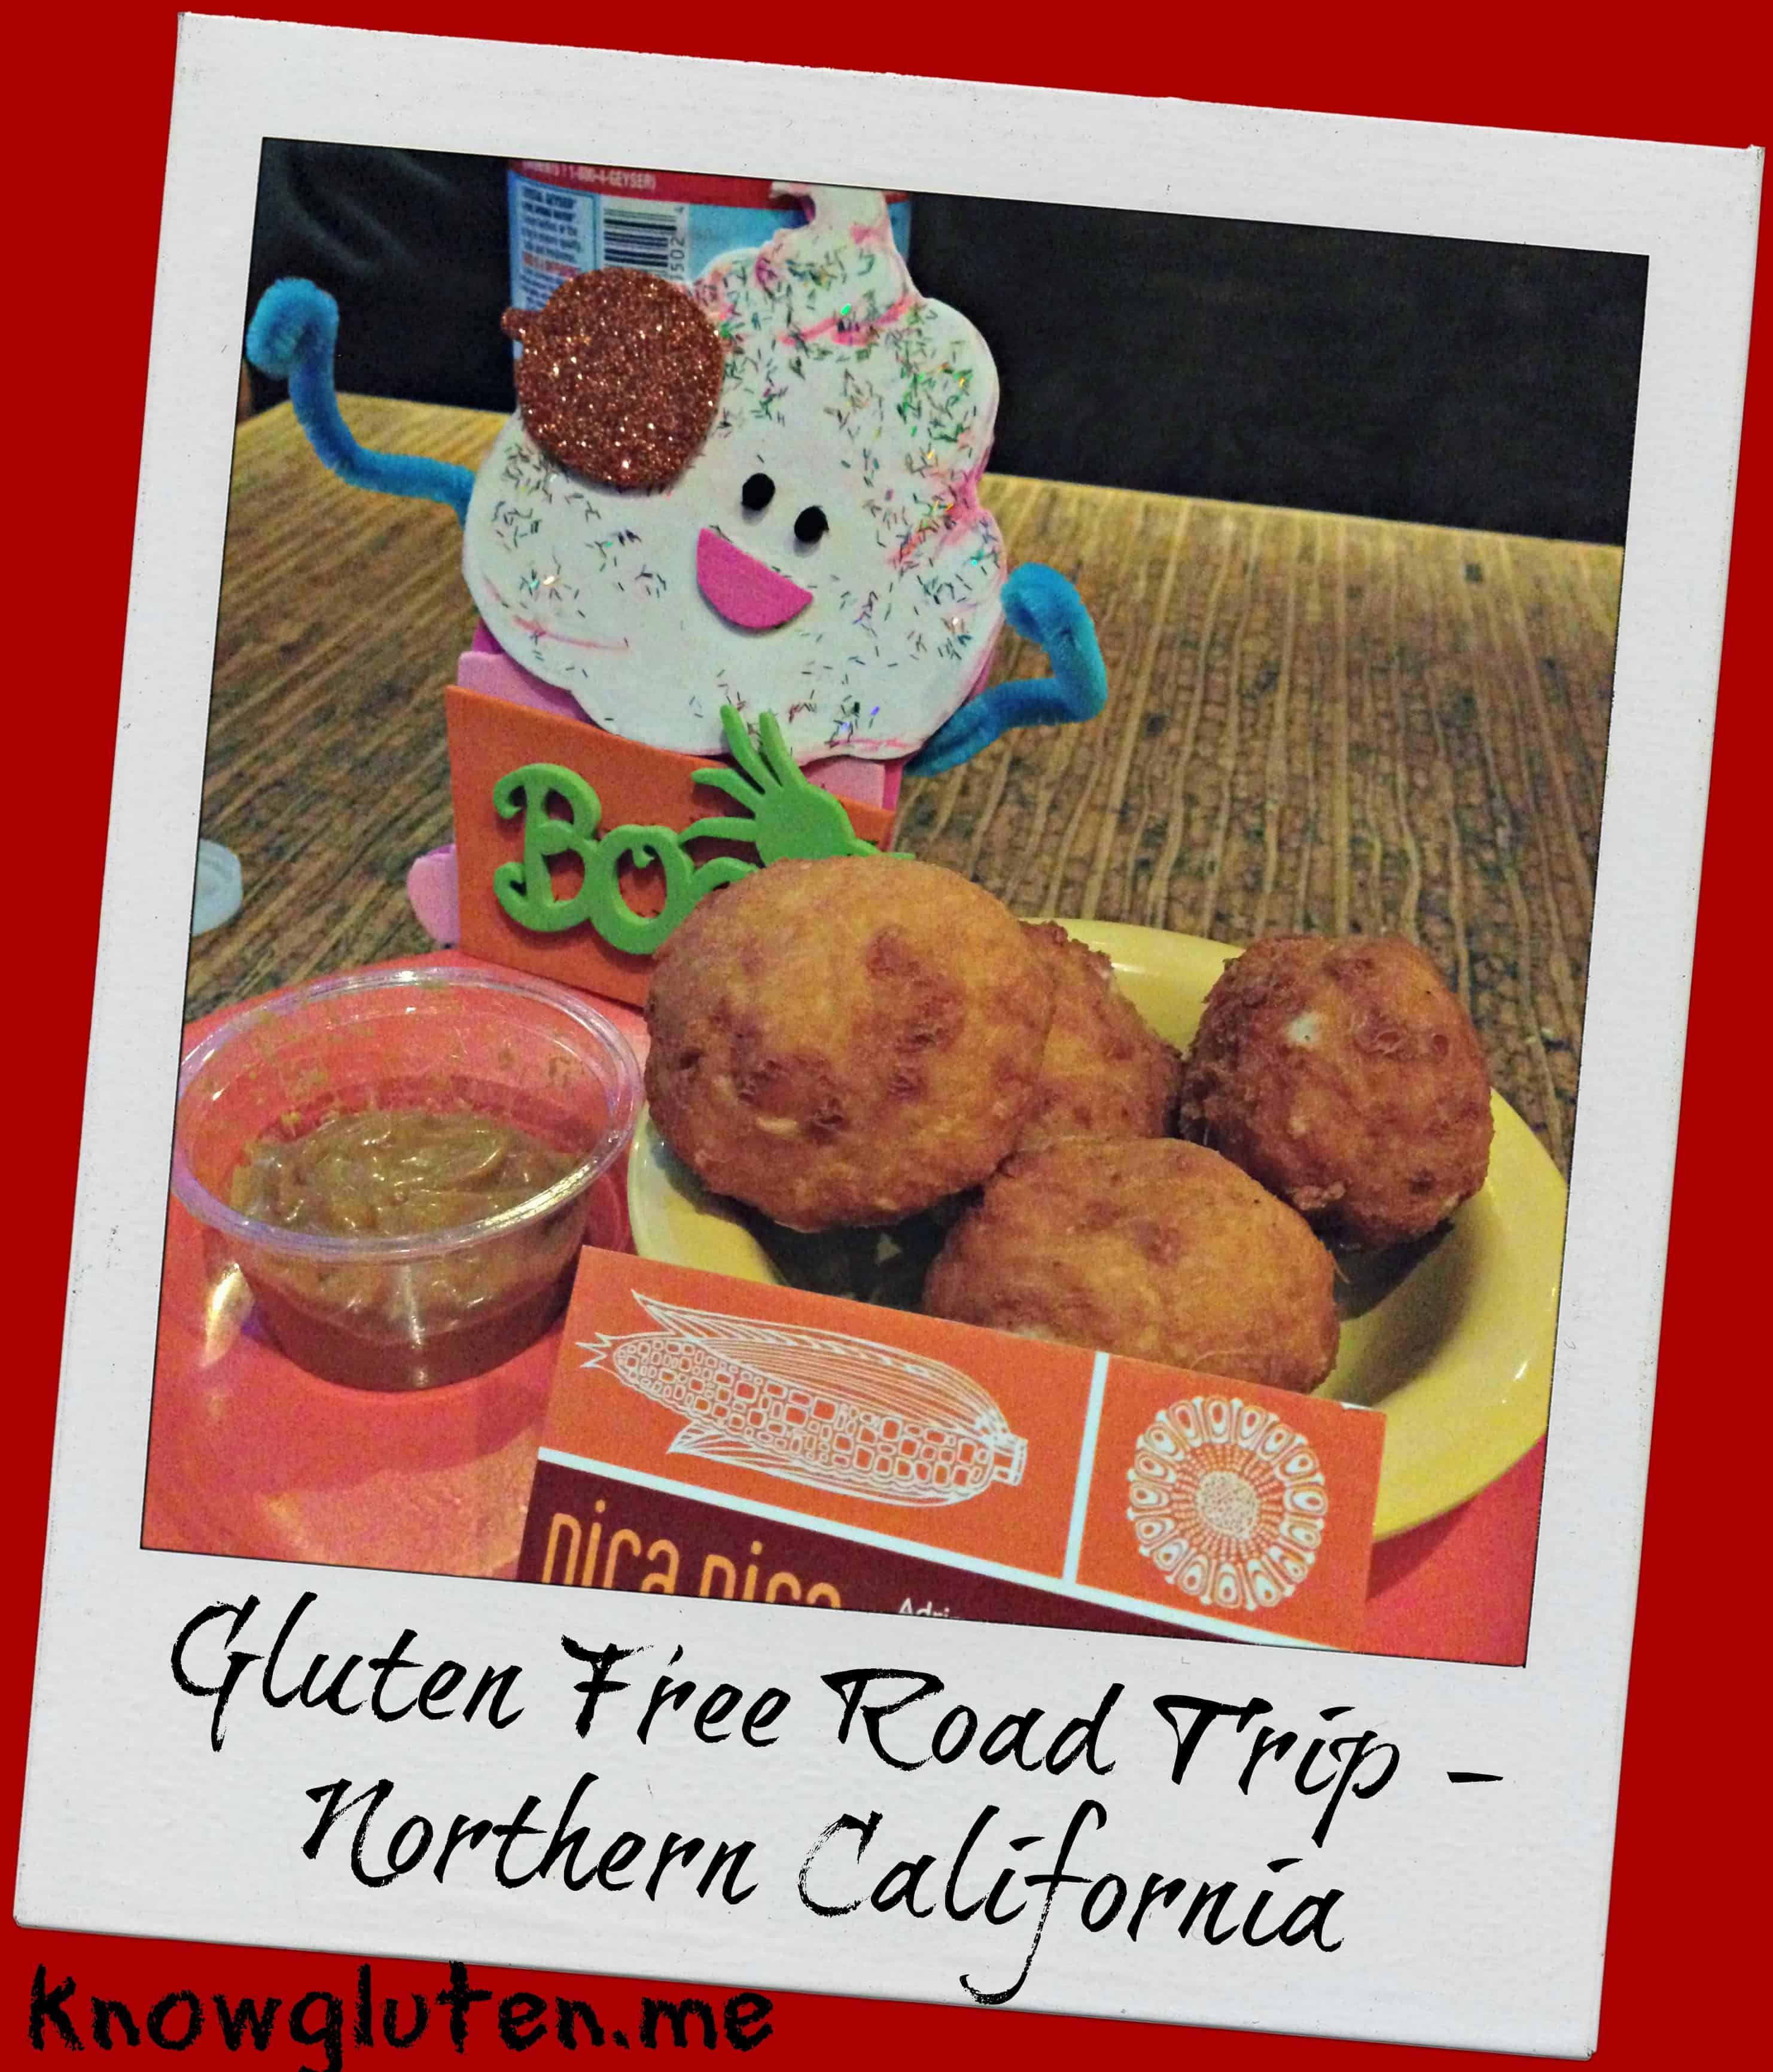 Gluten Free Road Trip - Northern California with knowgluten.me